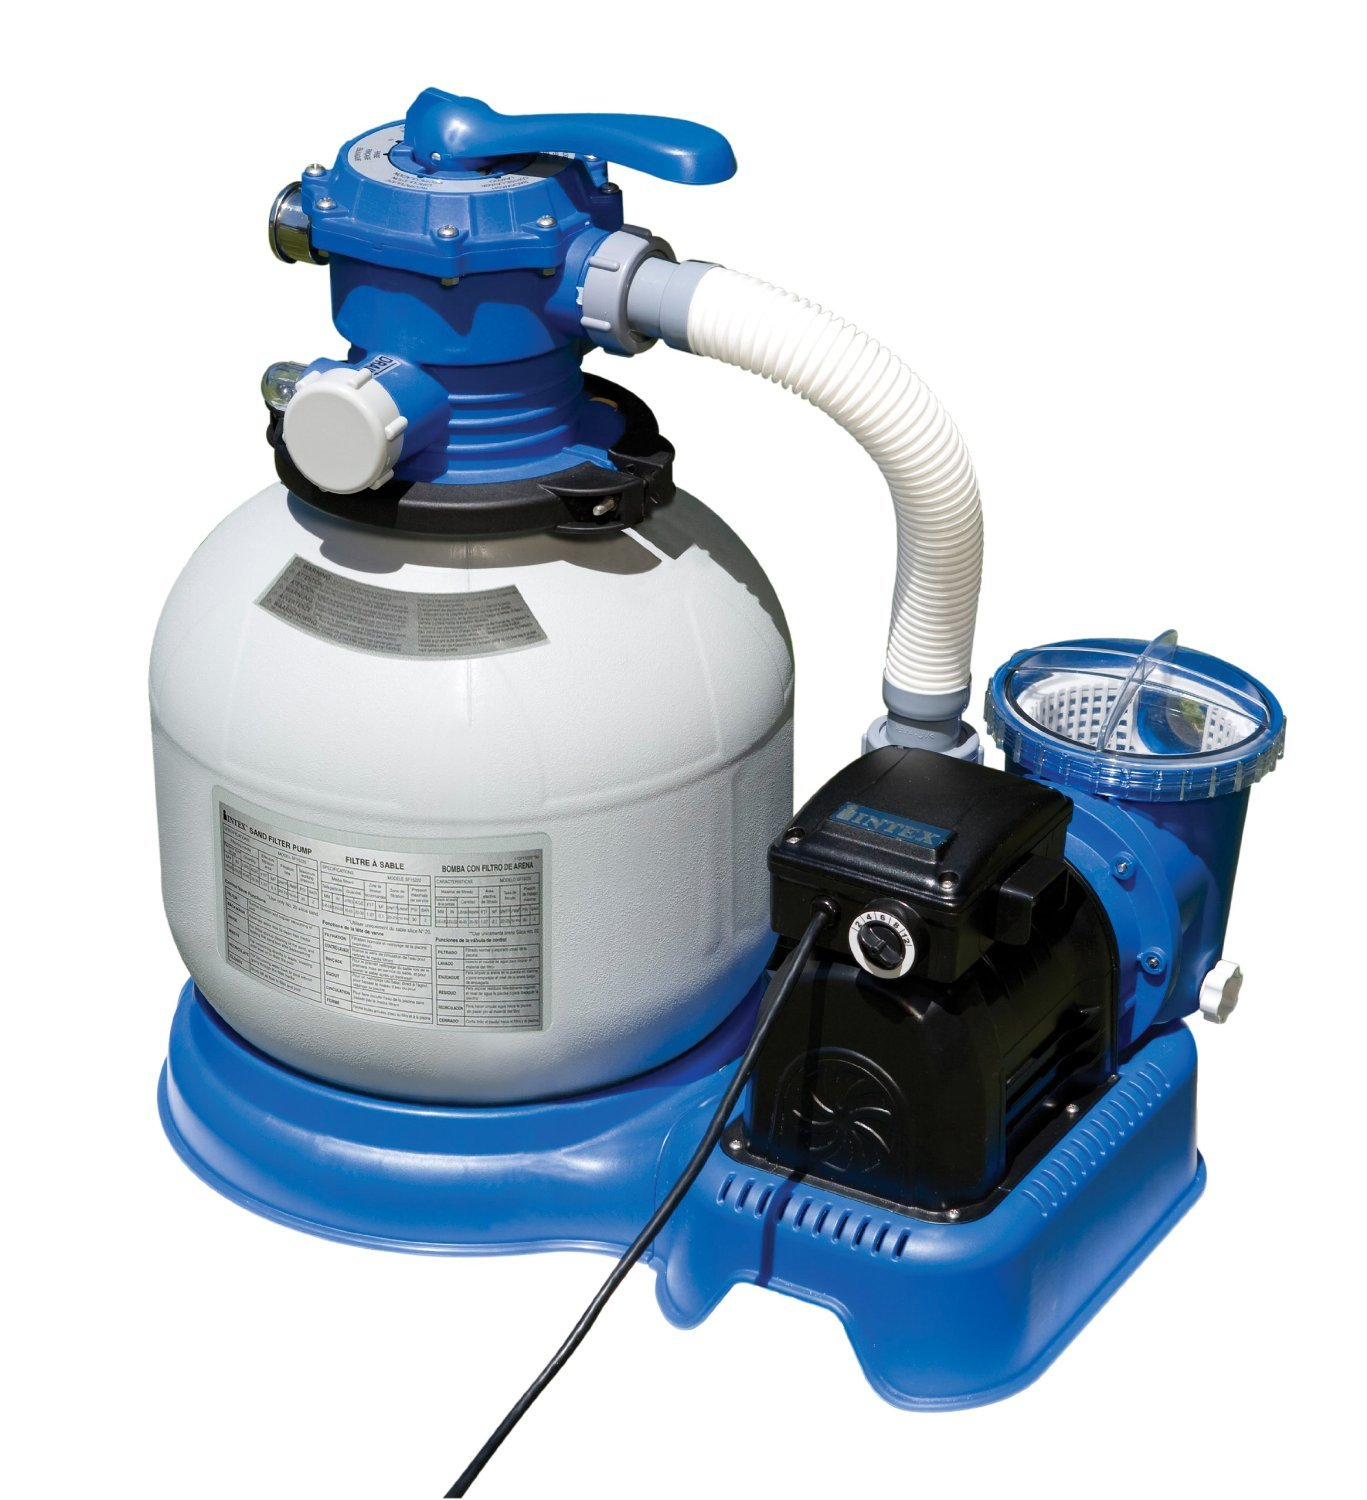 Intex 14 Inch Krystal Clear Sand Filter Pump Best Above